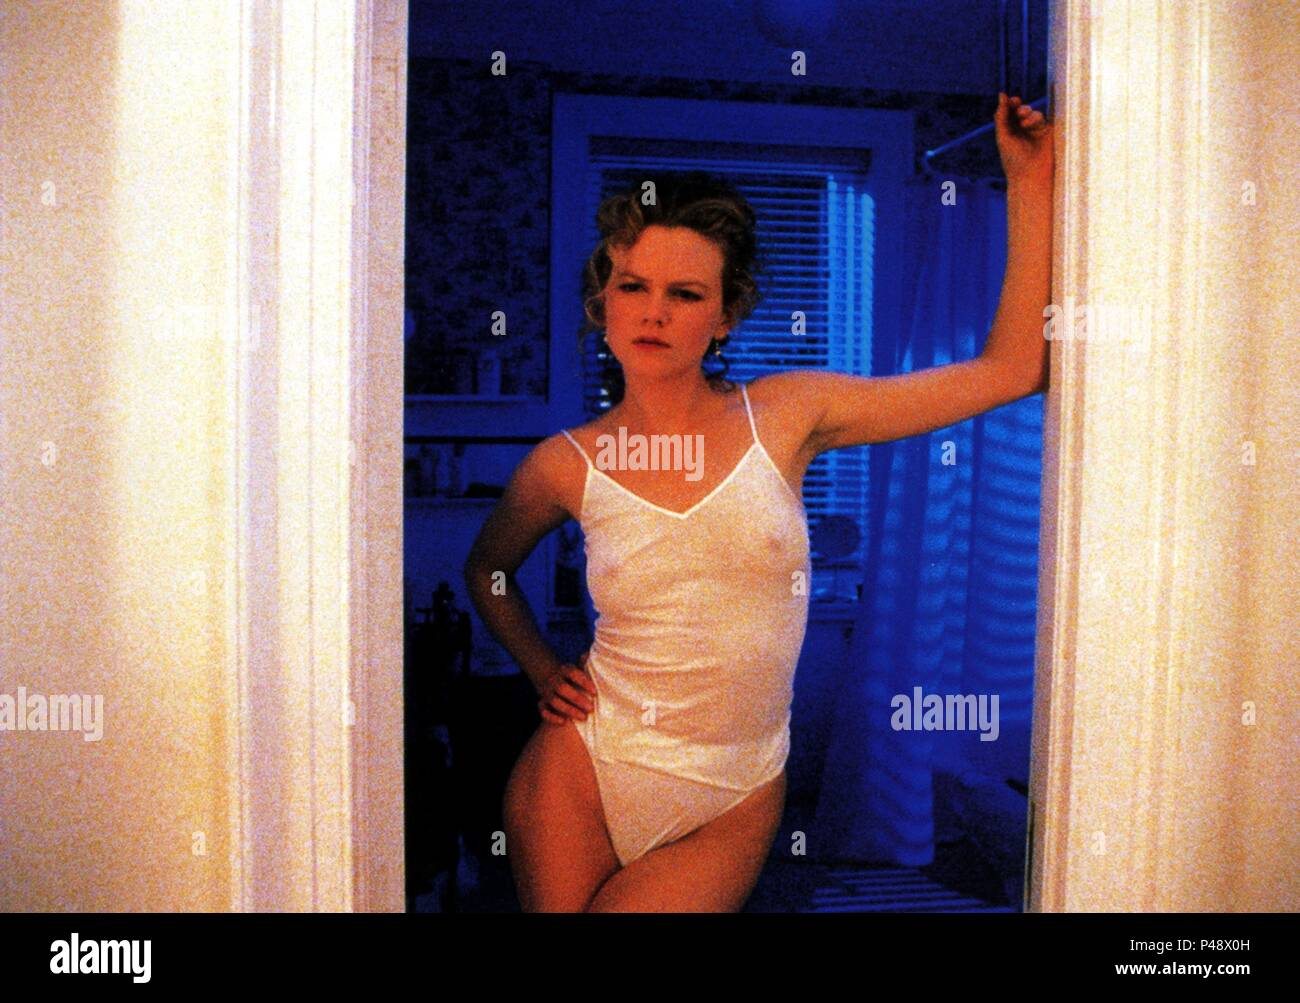 Original Film Title: EYES WIDE SHUT.  English Title: EYES WIDE SHUT.  Film Director: STANLEY KUBRICK.  Year: 1999.  Stars: NICOLE KIDMAN. Credit: WARNER BROS. PICTURES / Album - Stock Image